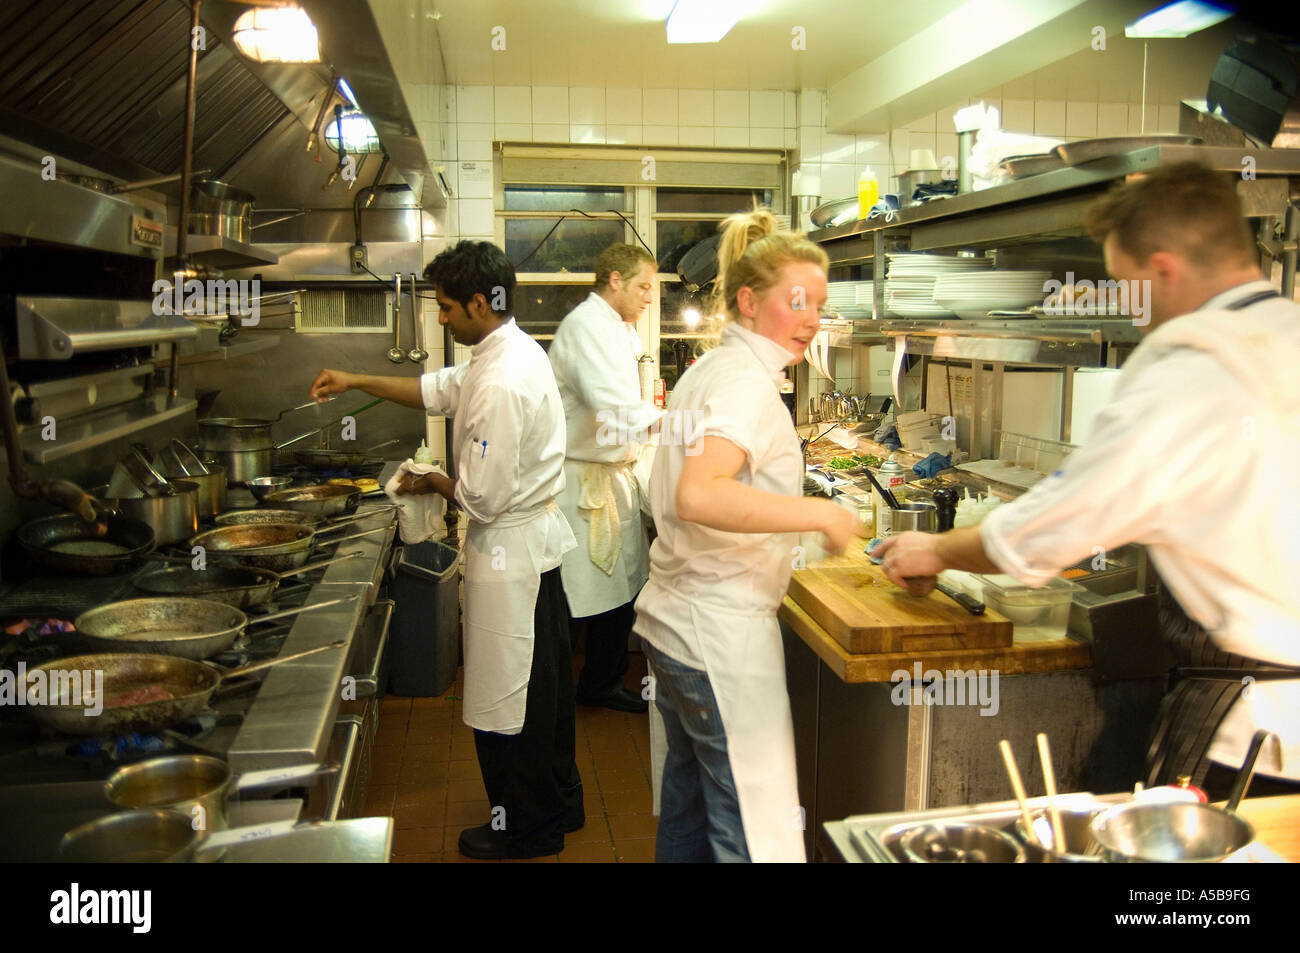 Busy Restaurant Kitchen Modren Busy Restaurant Kitchen 12 Gadgets For The Chef And Decorating